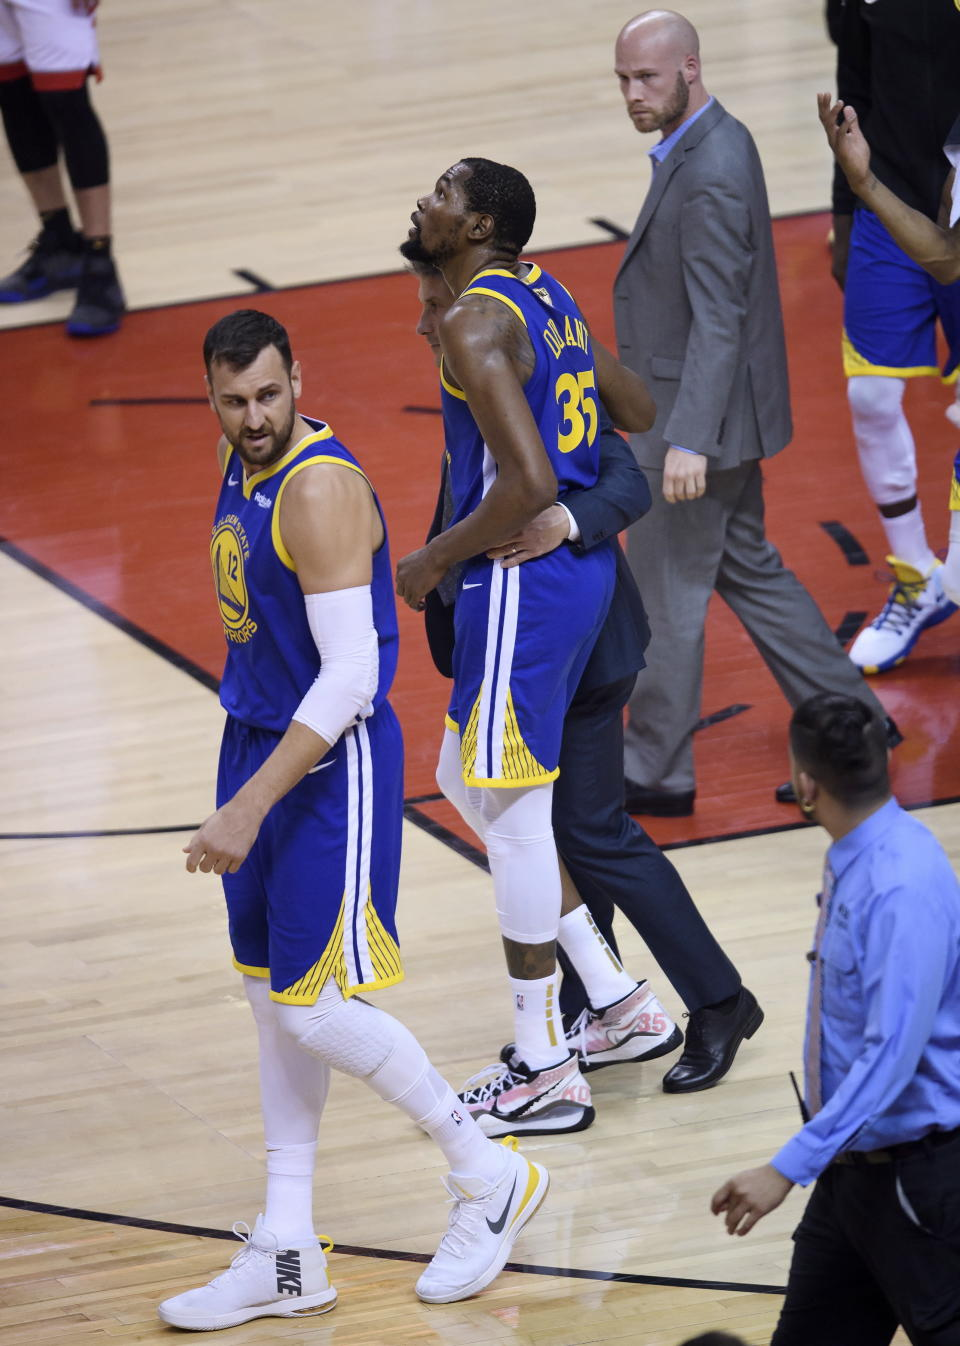 Golden State Warriors forward Kevin Durant (35) leaves after bering injured while playing against the Toronto Raptors during first-half basketball action in Game 5 of the NBA Finals in Toronto, Monday, June 10, 2019. (Nathan Denette/The Canadian Press via AP)